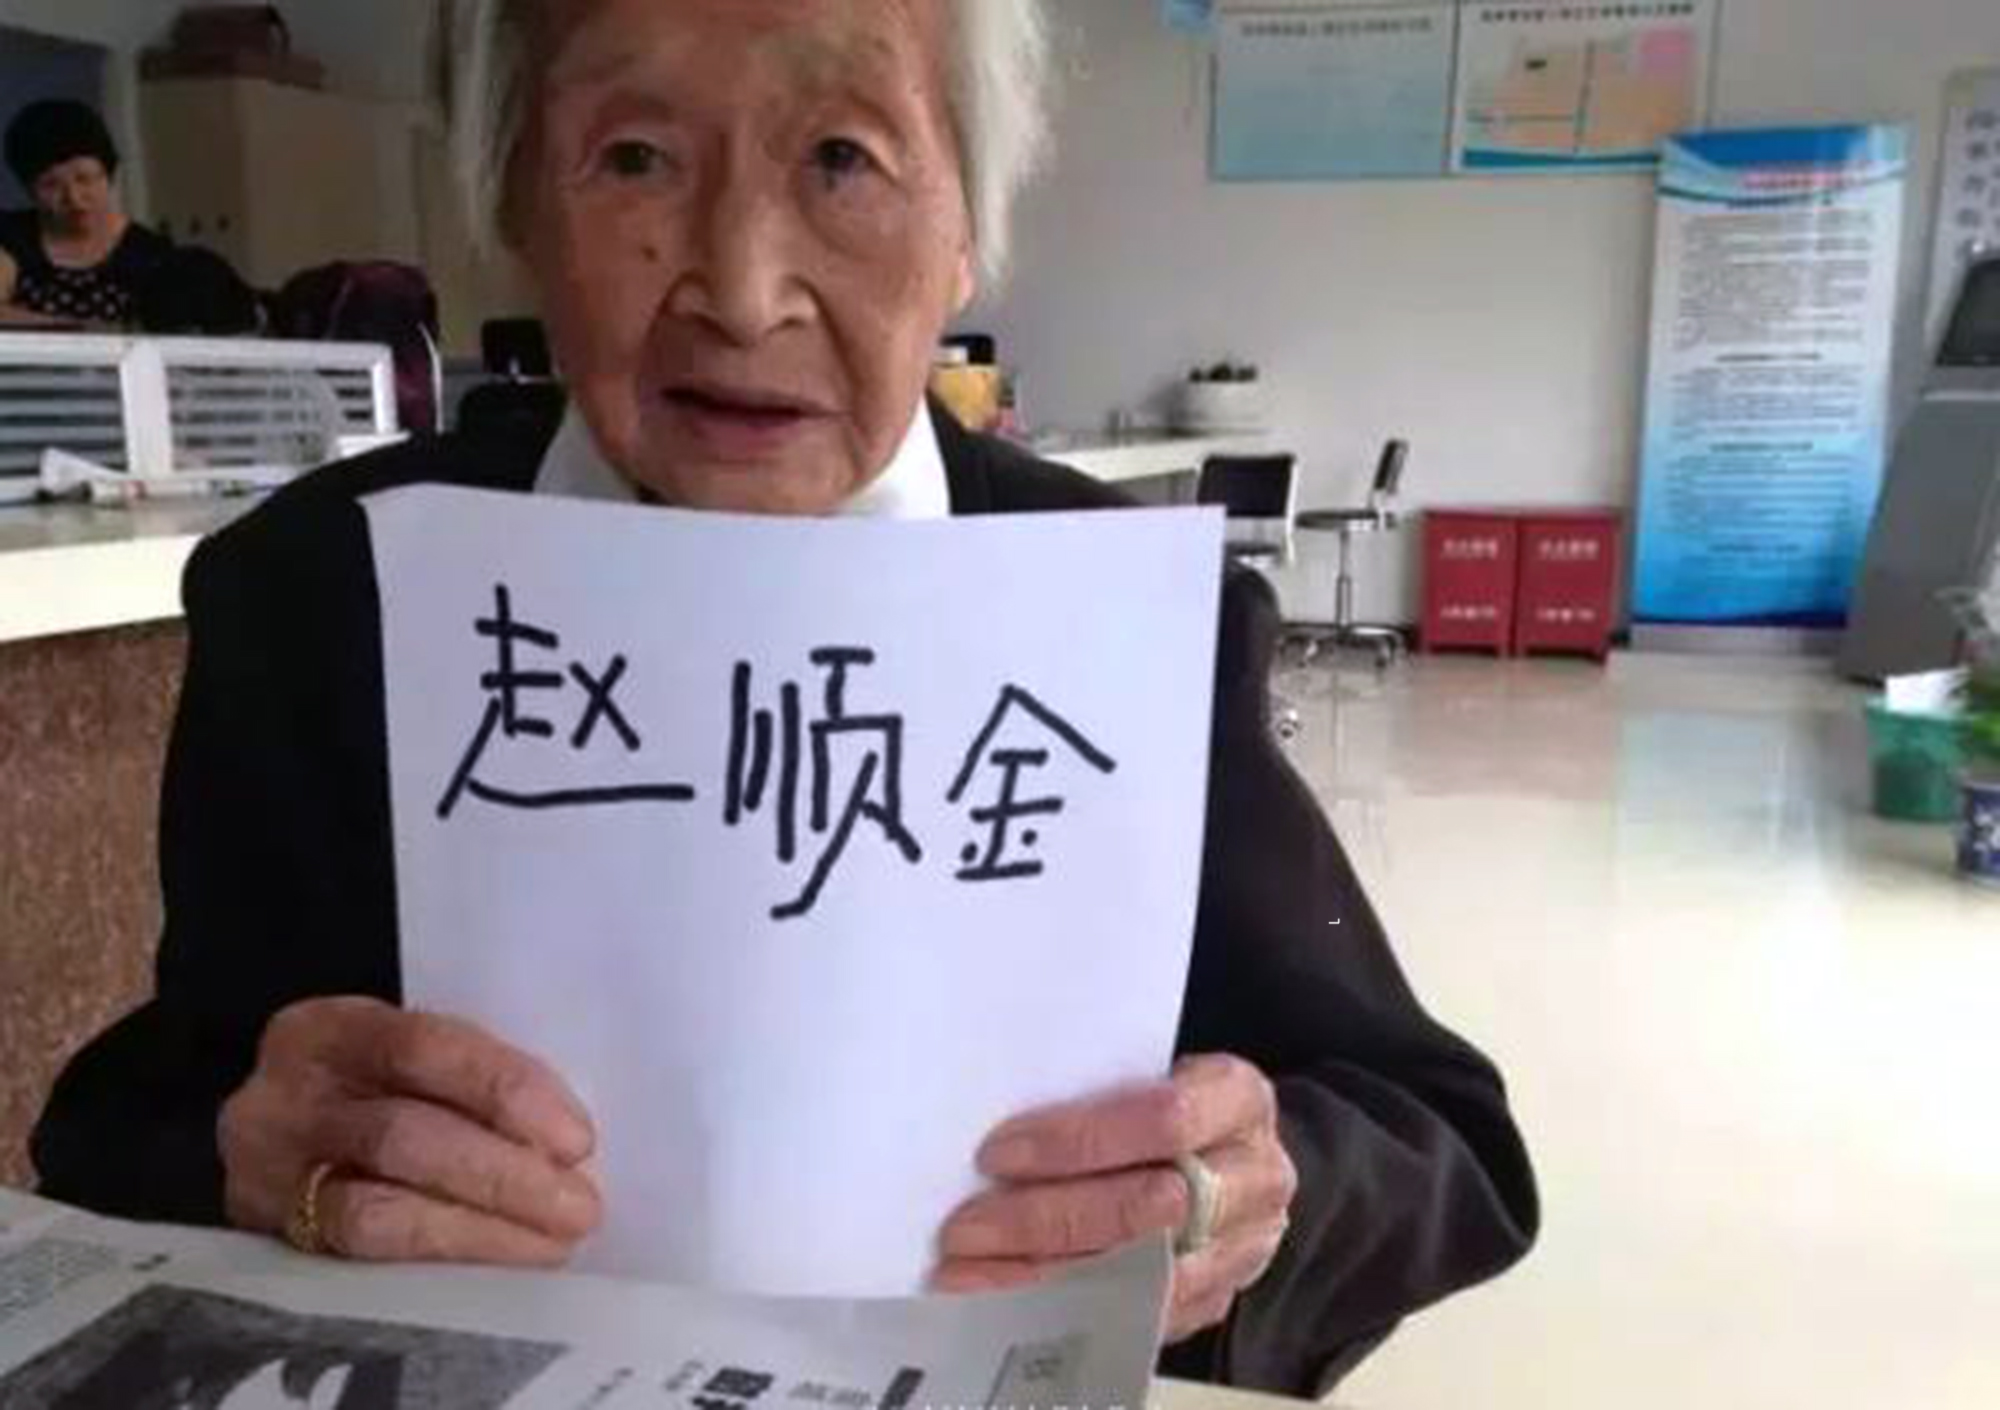 "Pic shows: Zhao Shunjin writing her name. A  100-year-old woman whose own children are already pensioners has inspired her community by learning how to read and write , having never attended a day of school in her life. Centenarian Zhao Shunjin, who celebrated her historic birthday this year, grew up illiterate in the city of Hangzhou, capital of east China's Zhejiang Province, and never had to chance to go to school as she married early and gave birth to children at a young age. Shunjin, whose oldest son is already 78, could barely write her own name in Chinese characters when she heard of the literacy course being offered by social workers in her community. Chen Lijun, a social worker, together with her colleagues, began offering a 10-day course in June this year for illiterate citizens to sign up free of charge in order to learn how to read and write. But Lijun said she ""did not expect someone as old as Ms Zhao to turn up"". Shunjin attended the 10-day course and was so encouraging to the learners and teachers at the welfare centre that community workers decided to devote hours to teach Shunjin privately. Lijun added: ""What a feat to come learn at the age of 100."" The elderly woman who now lives with Luo Rongsheng, one of her sons, reportedly spent extra hours at home studying. But even she was not immune to the occasional lapse in concentration. Her son Rongsheng said: ""[Mother] was just like a little child when we saw her studying at her desk. But she sometimes also got lazy and lost concentration, so we had to remind her to 'work hard.'"" Rongsheng added that the family was fully supportive of their elderly mother's decision to beat illiteracy, and they are also sympathetic of the hardships she went through in her early days. Rongsheng said: ""Our mother understands best the difficulties of being illiterate, but in her day she had no other choice but to work and send us to school."" He added: ""My older brother who is 78 managed to attend univer"